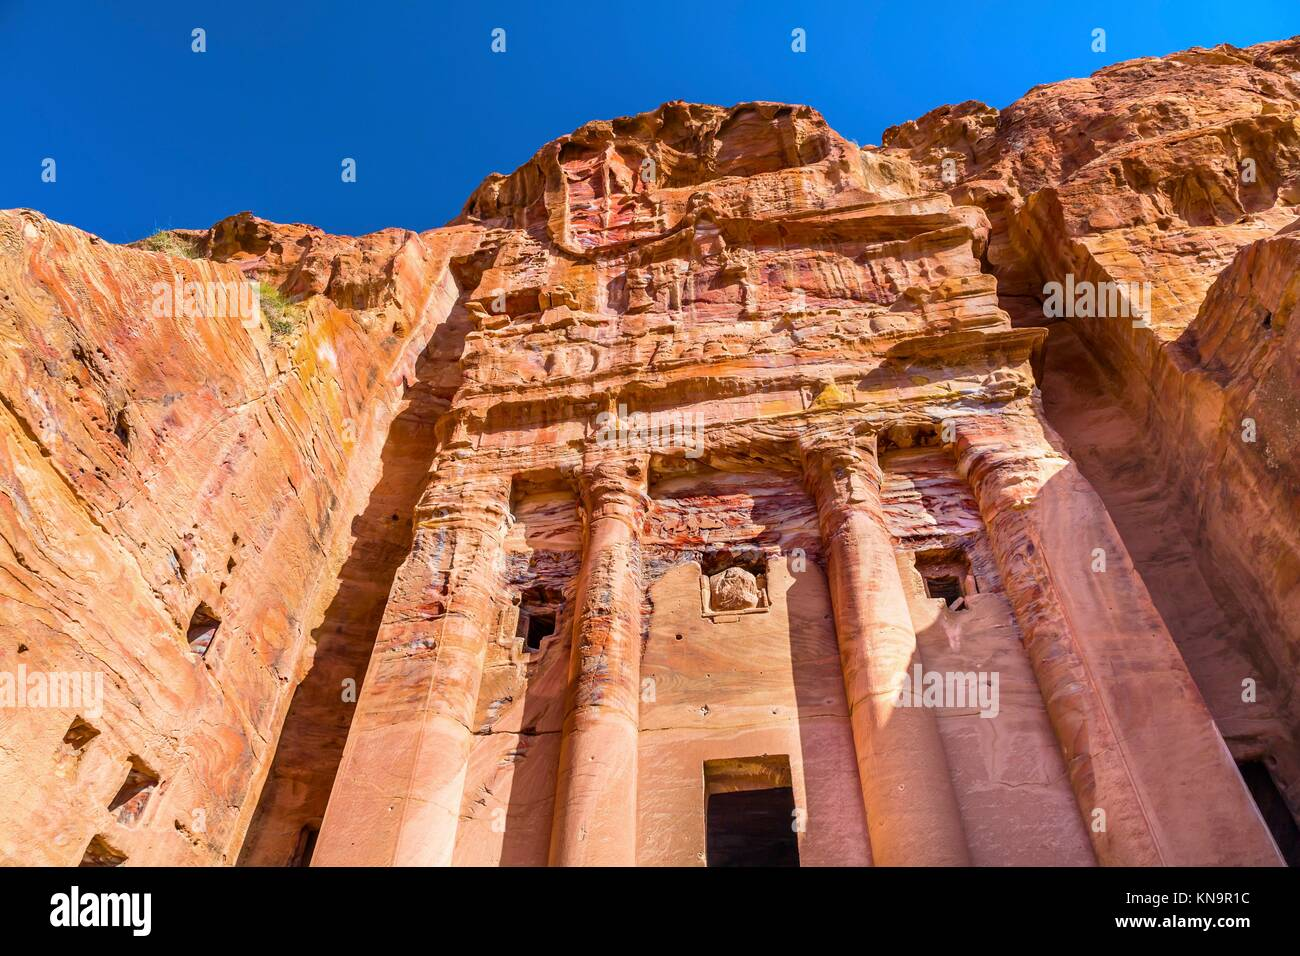 Royal Rock Tomb Arch Petra Jordan. Built by the Nabataens in 200 BC to 400 AD. Inside the Tombs, the red, orange, - Stock Image